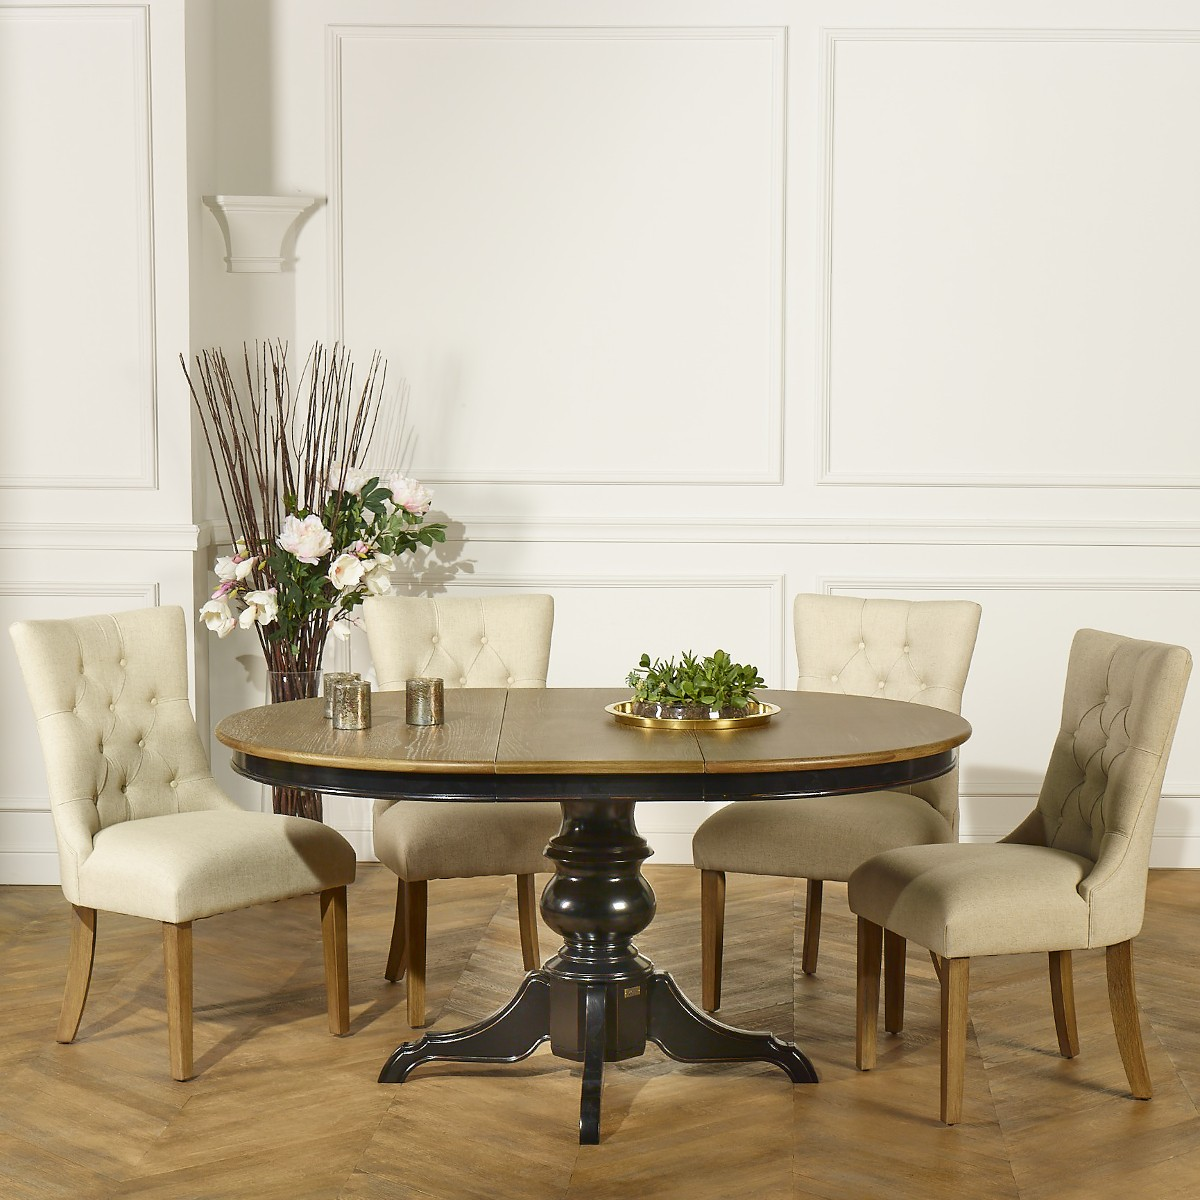 The Ariane Dining Table Black Robin Des Bois